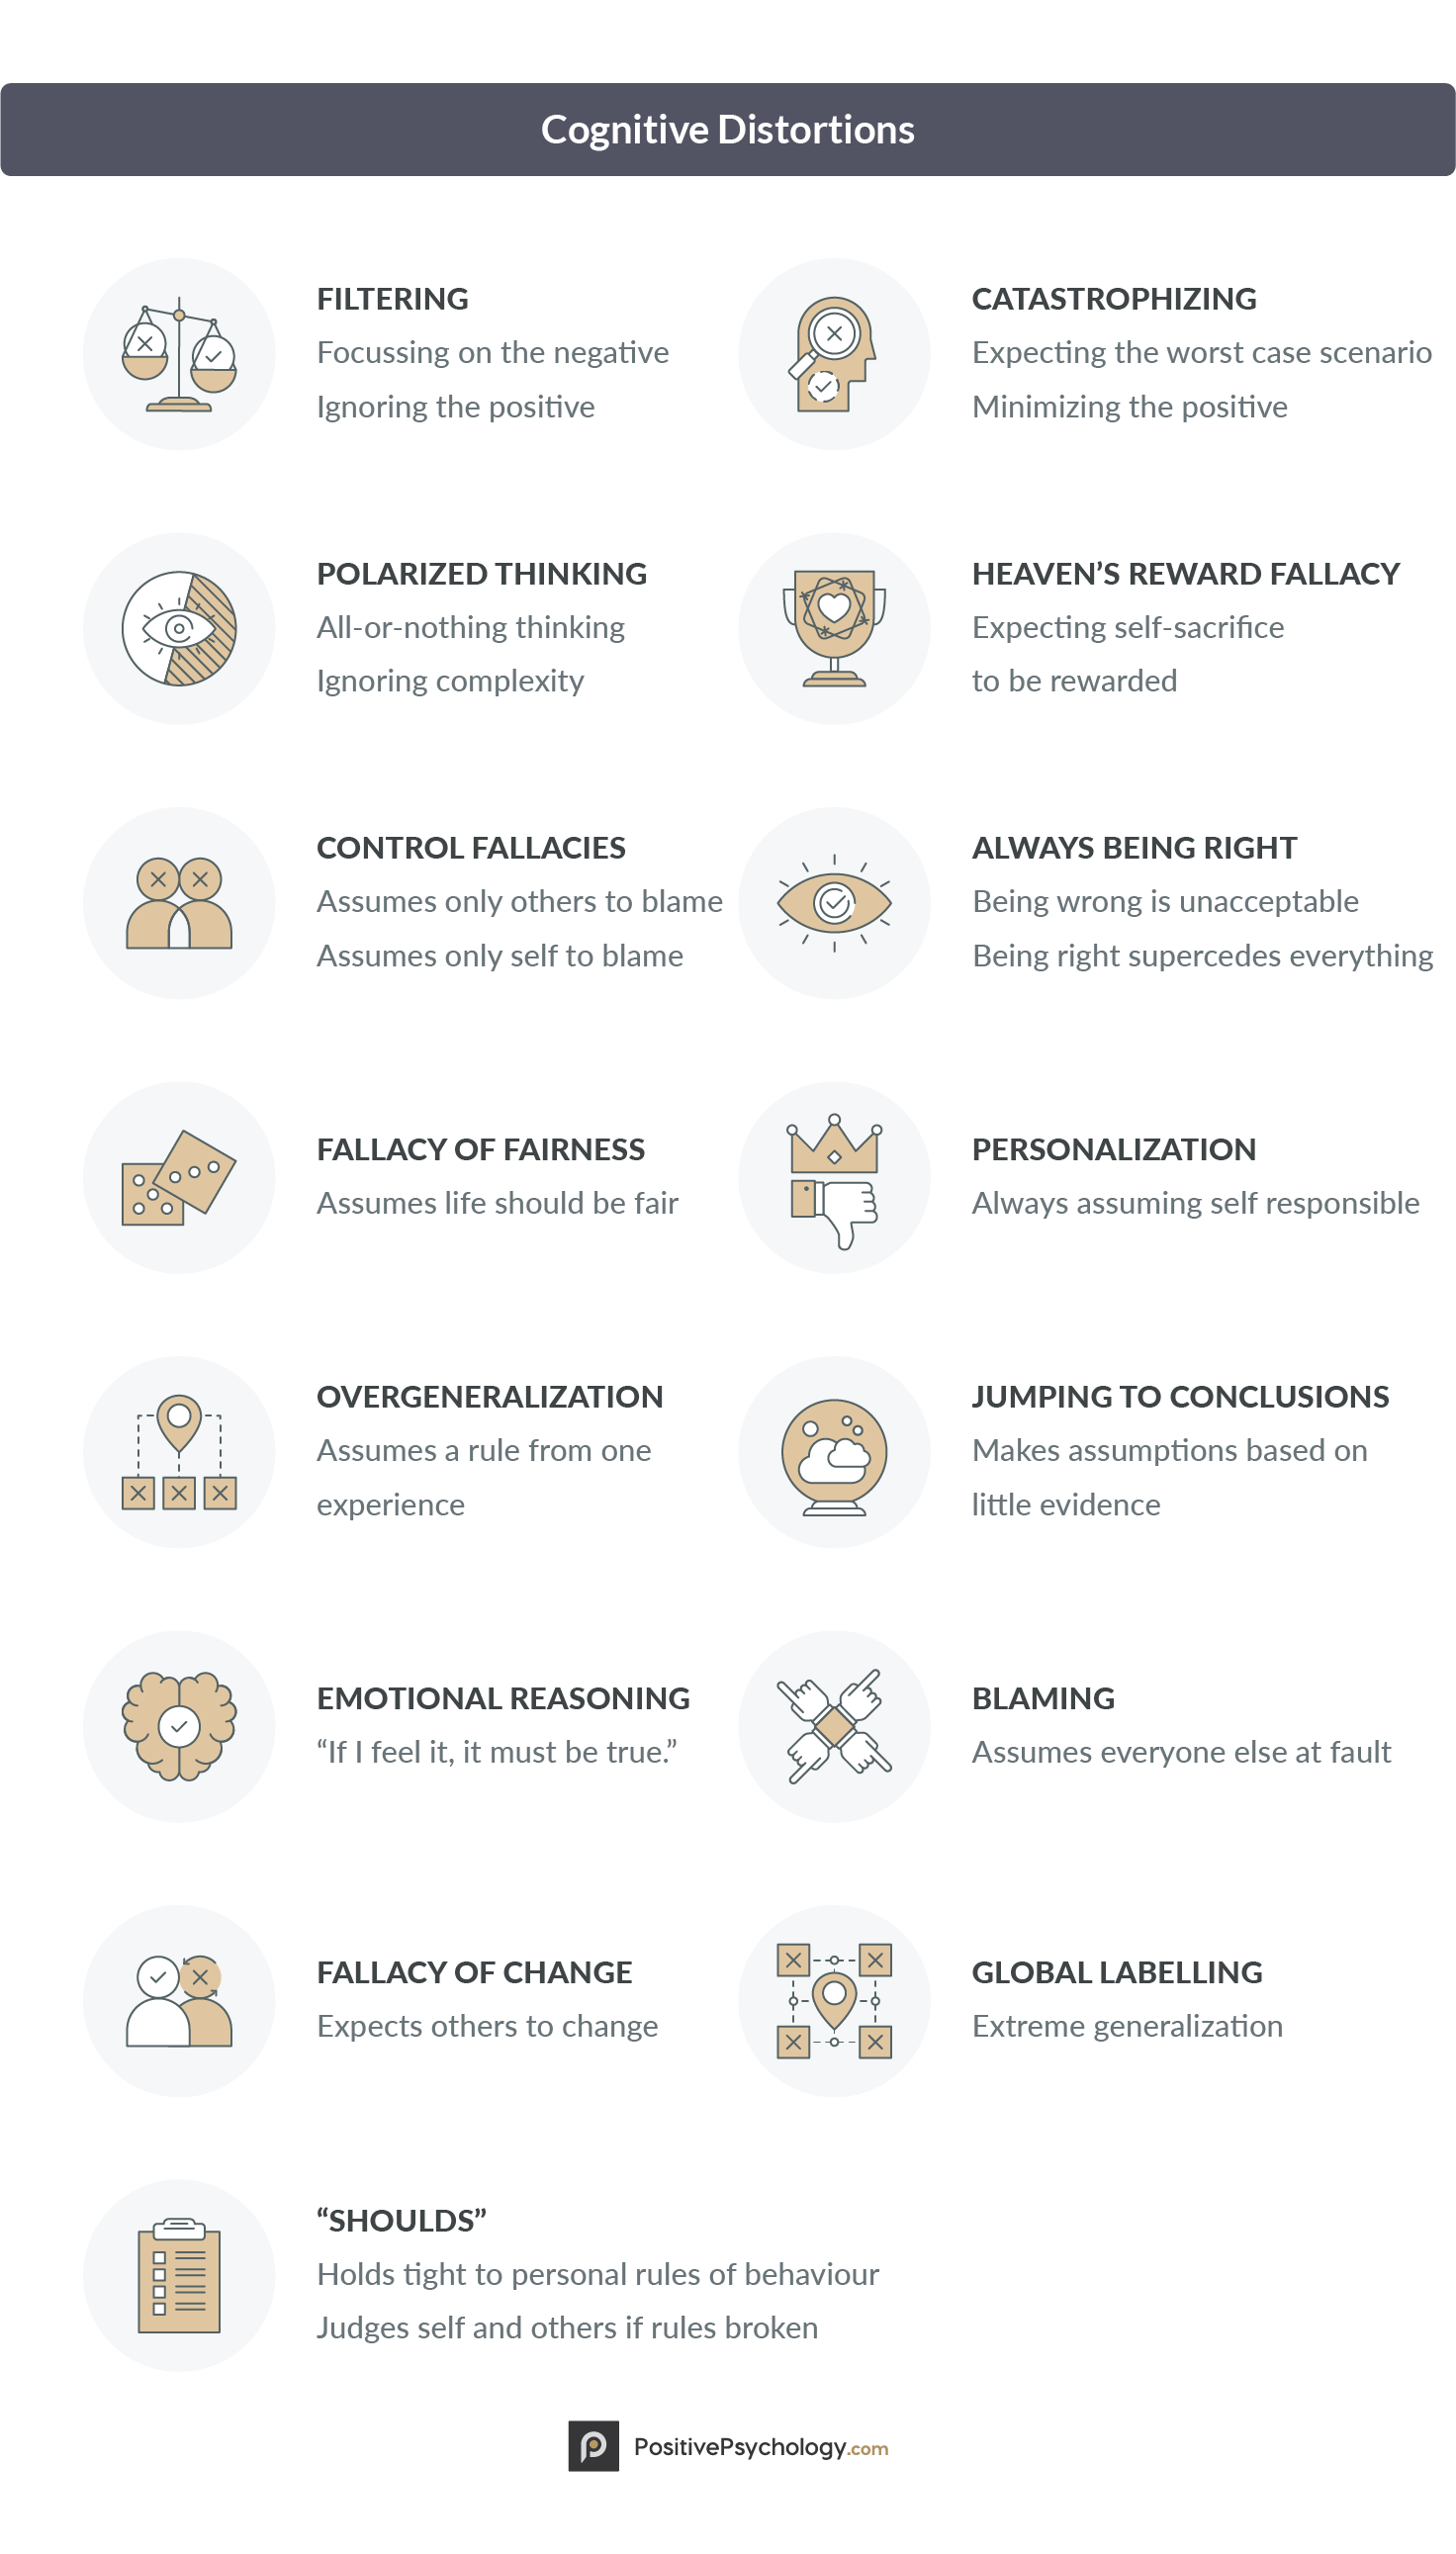 Categories Of Cognitive Distortions Coolguides